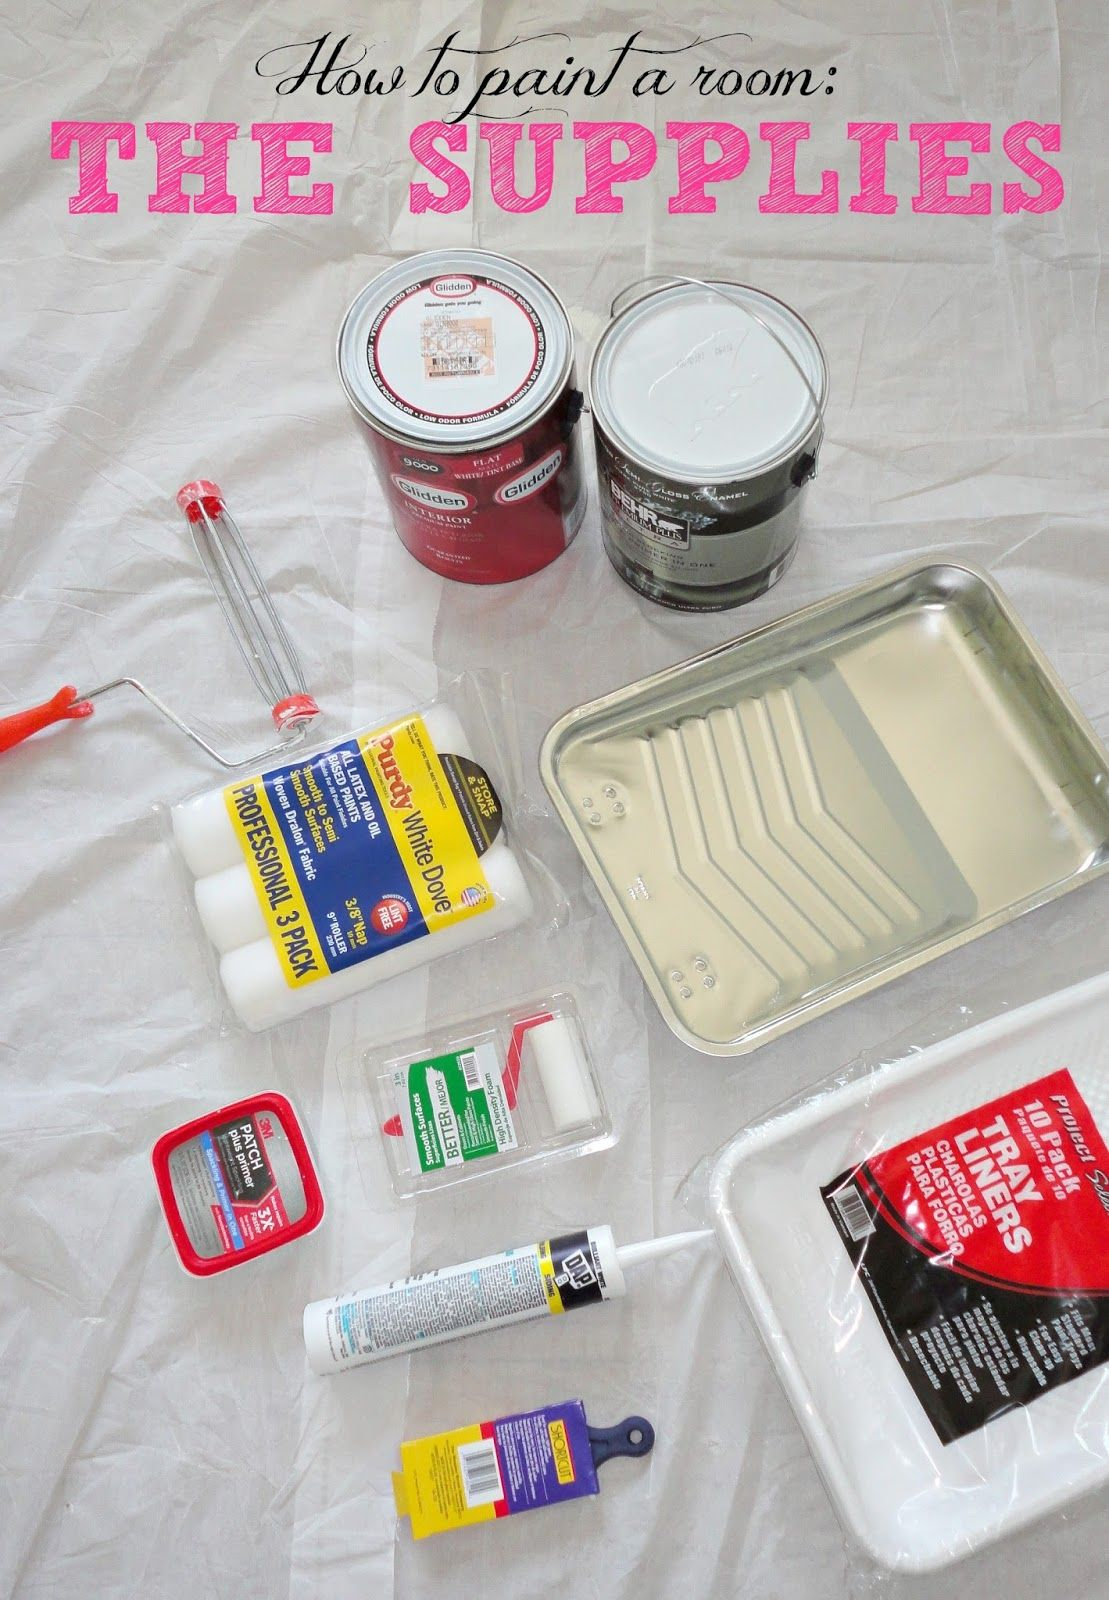 How To Paint A Room In 10 Easy Steps Complete Tutorial With Everything You Need Know Including What Products Use This Is Great